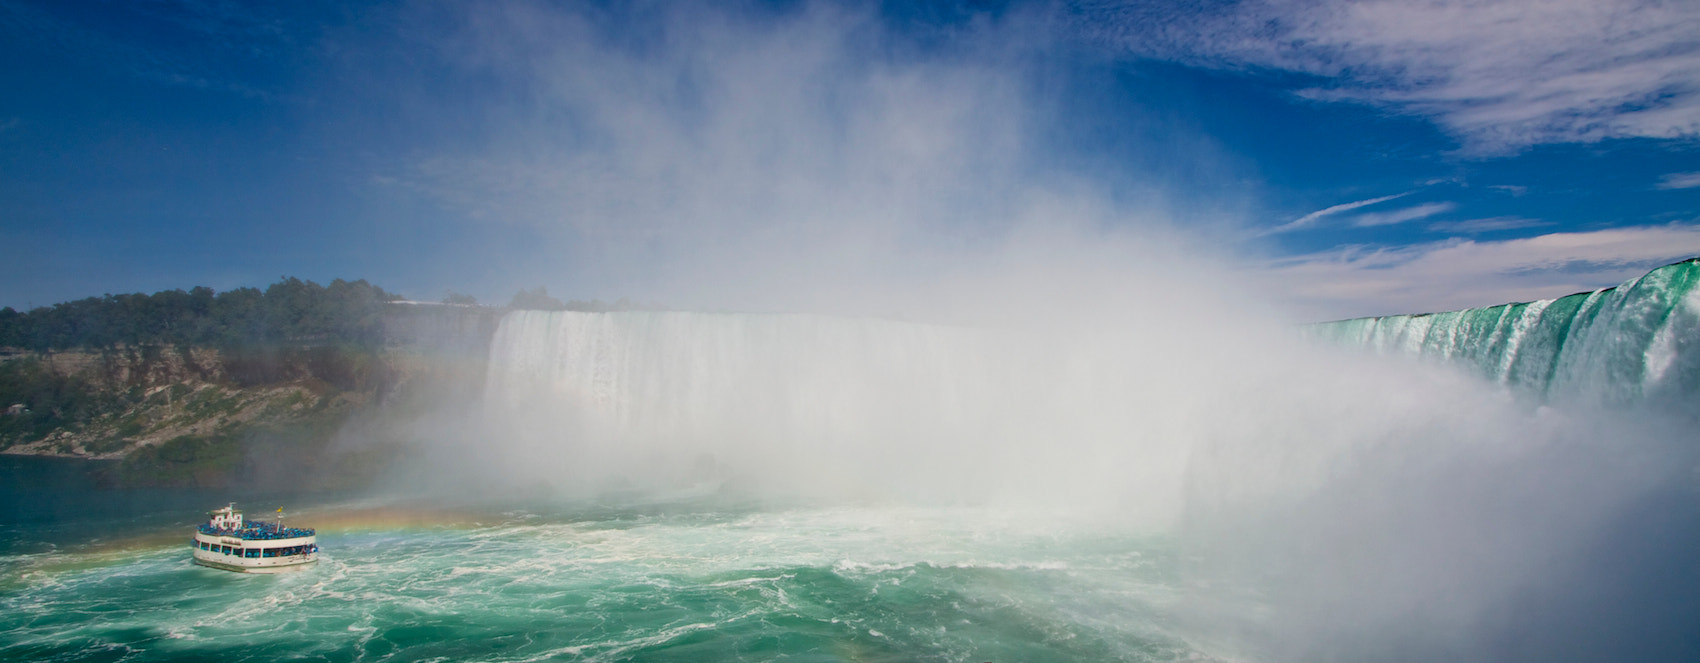 Photograph Niagara Falls and Maid of the Mist by Shane McDonald on 500px